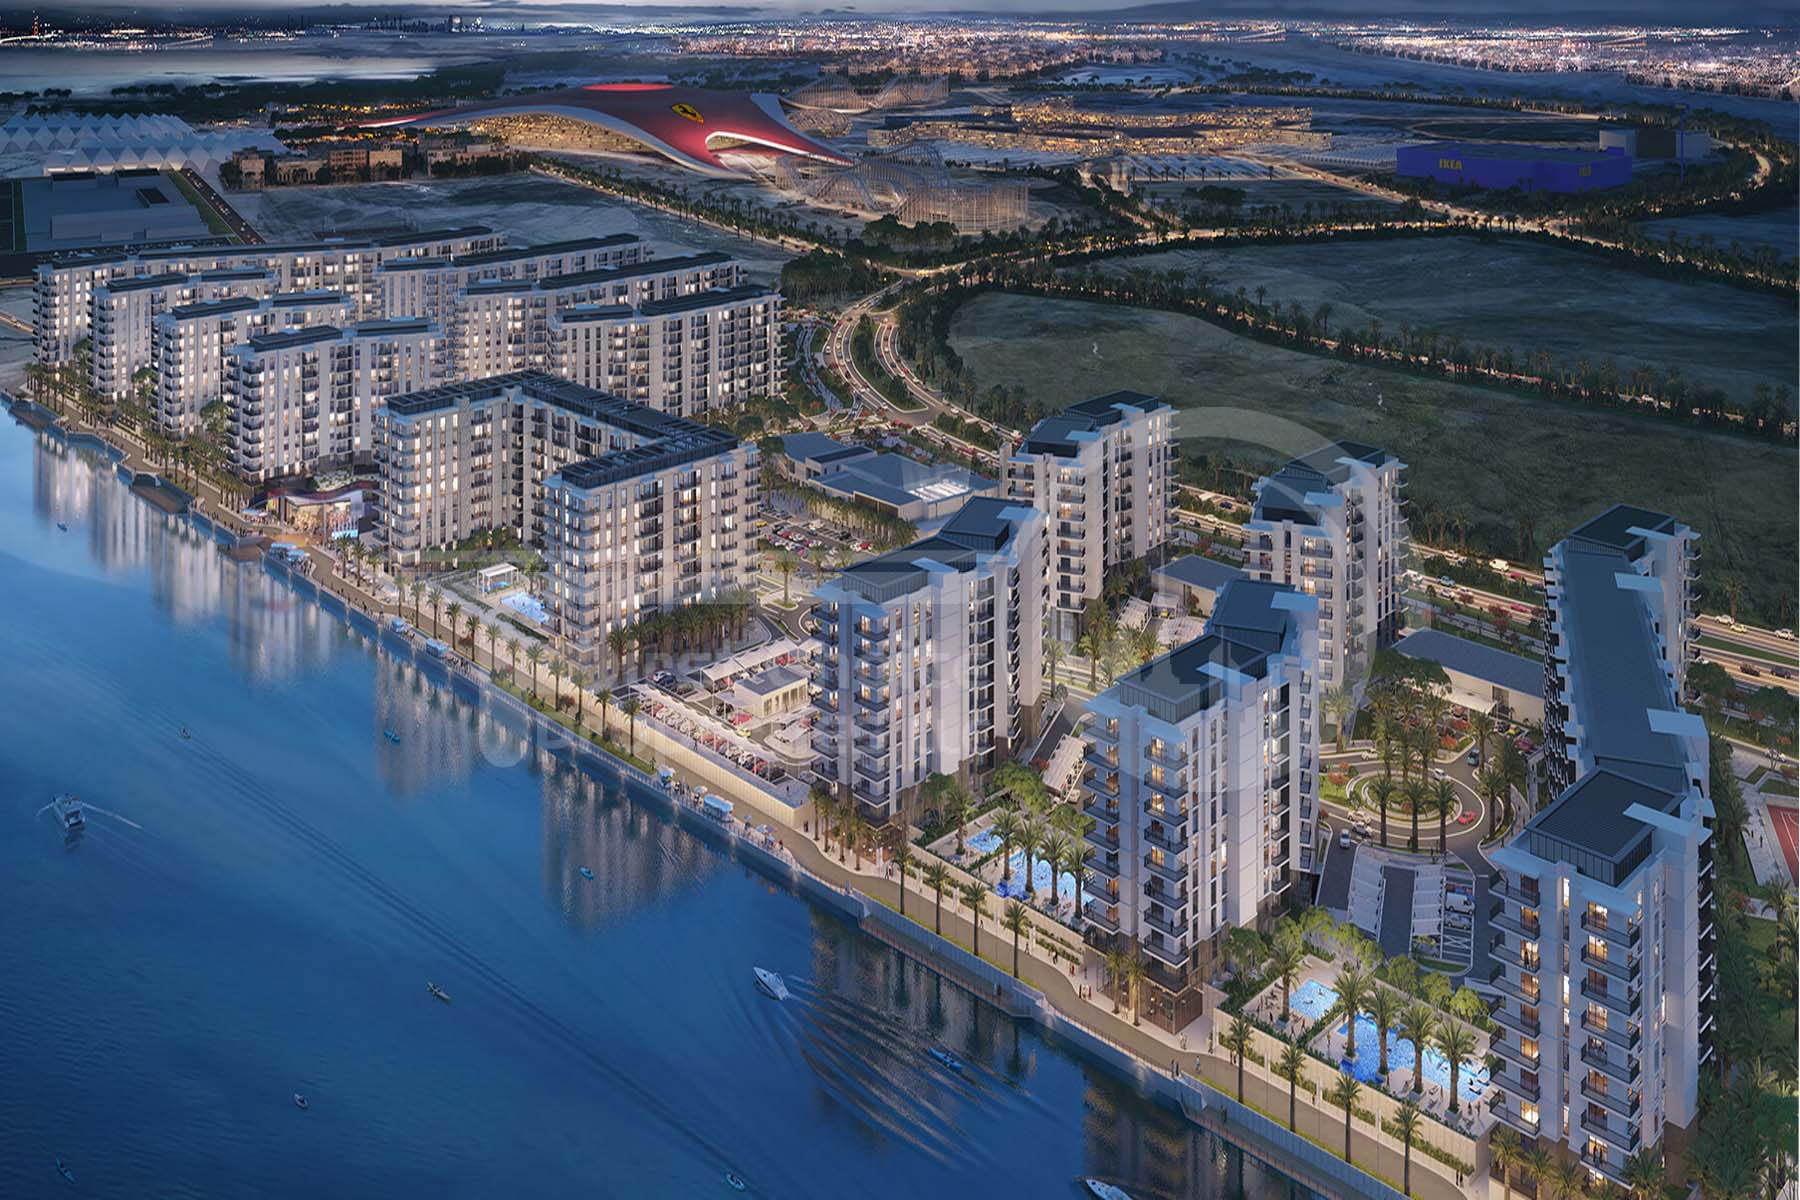 Studio - 1 Bedroom - 2 Bedroom - 3 Bedroom Apartment - Water's Edge - Yas Island - Abu Dhabi - UAE (16).jpg